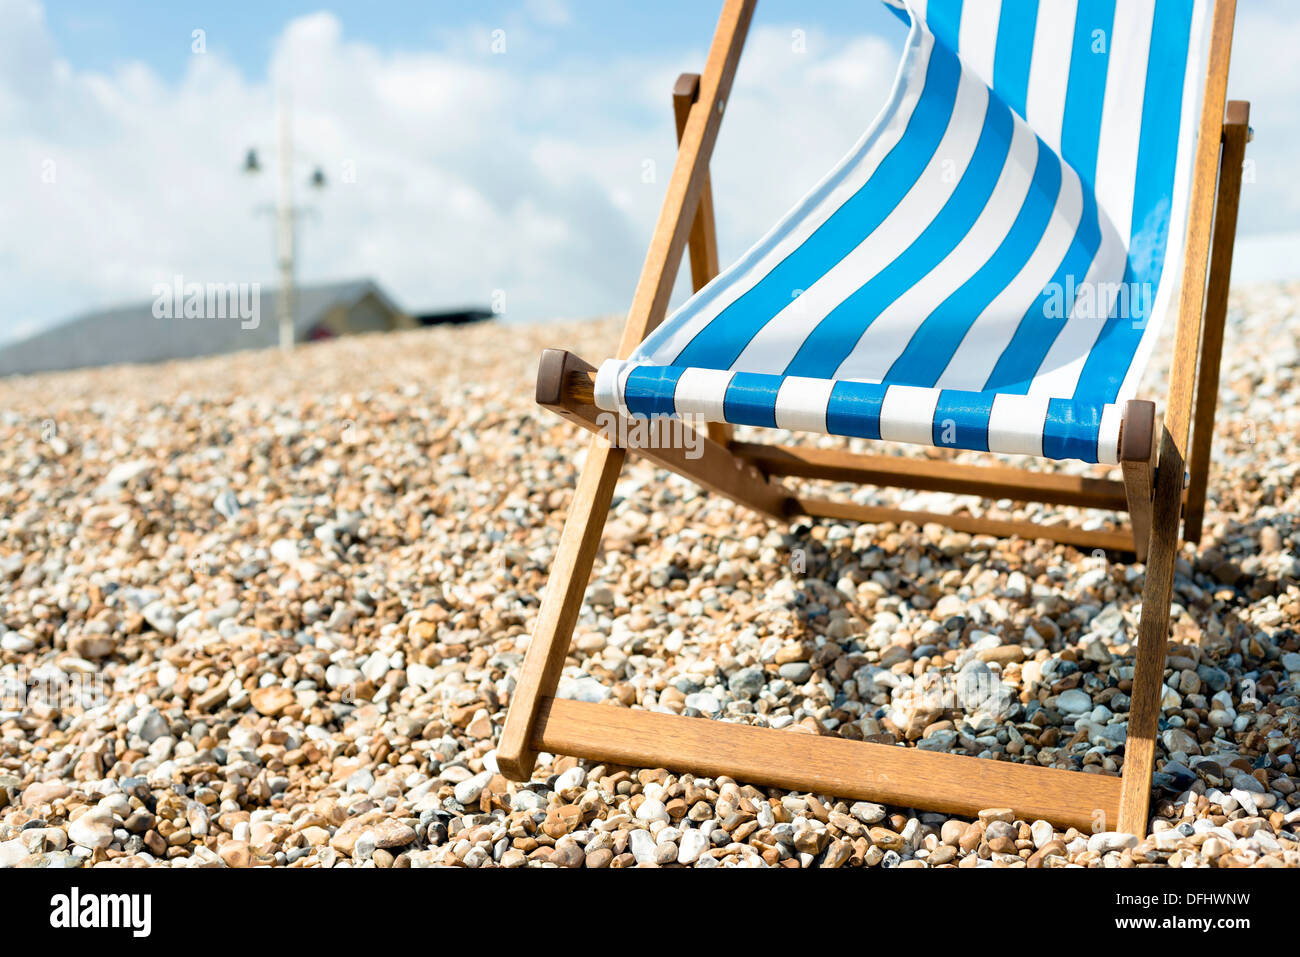 chair cover hire west sussex riser recliner chairs regis deck on beach stock photos and